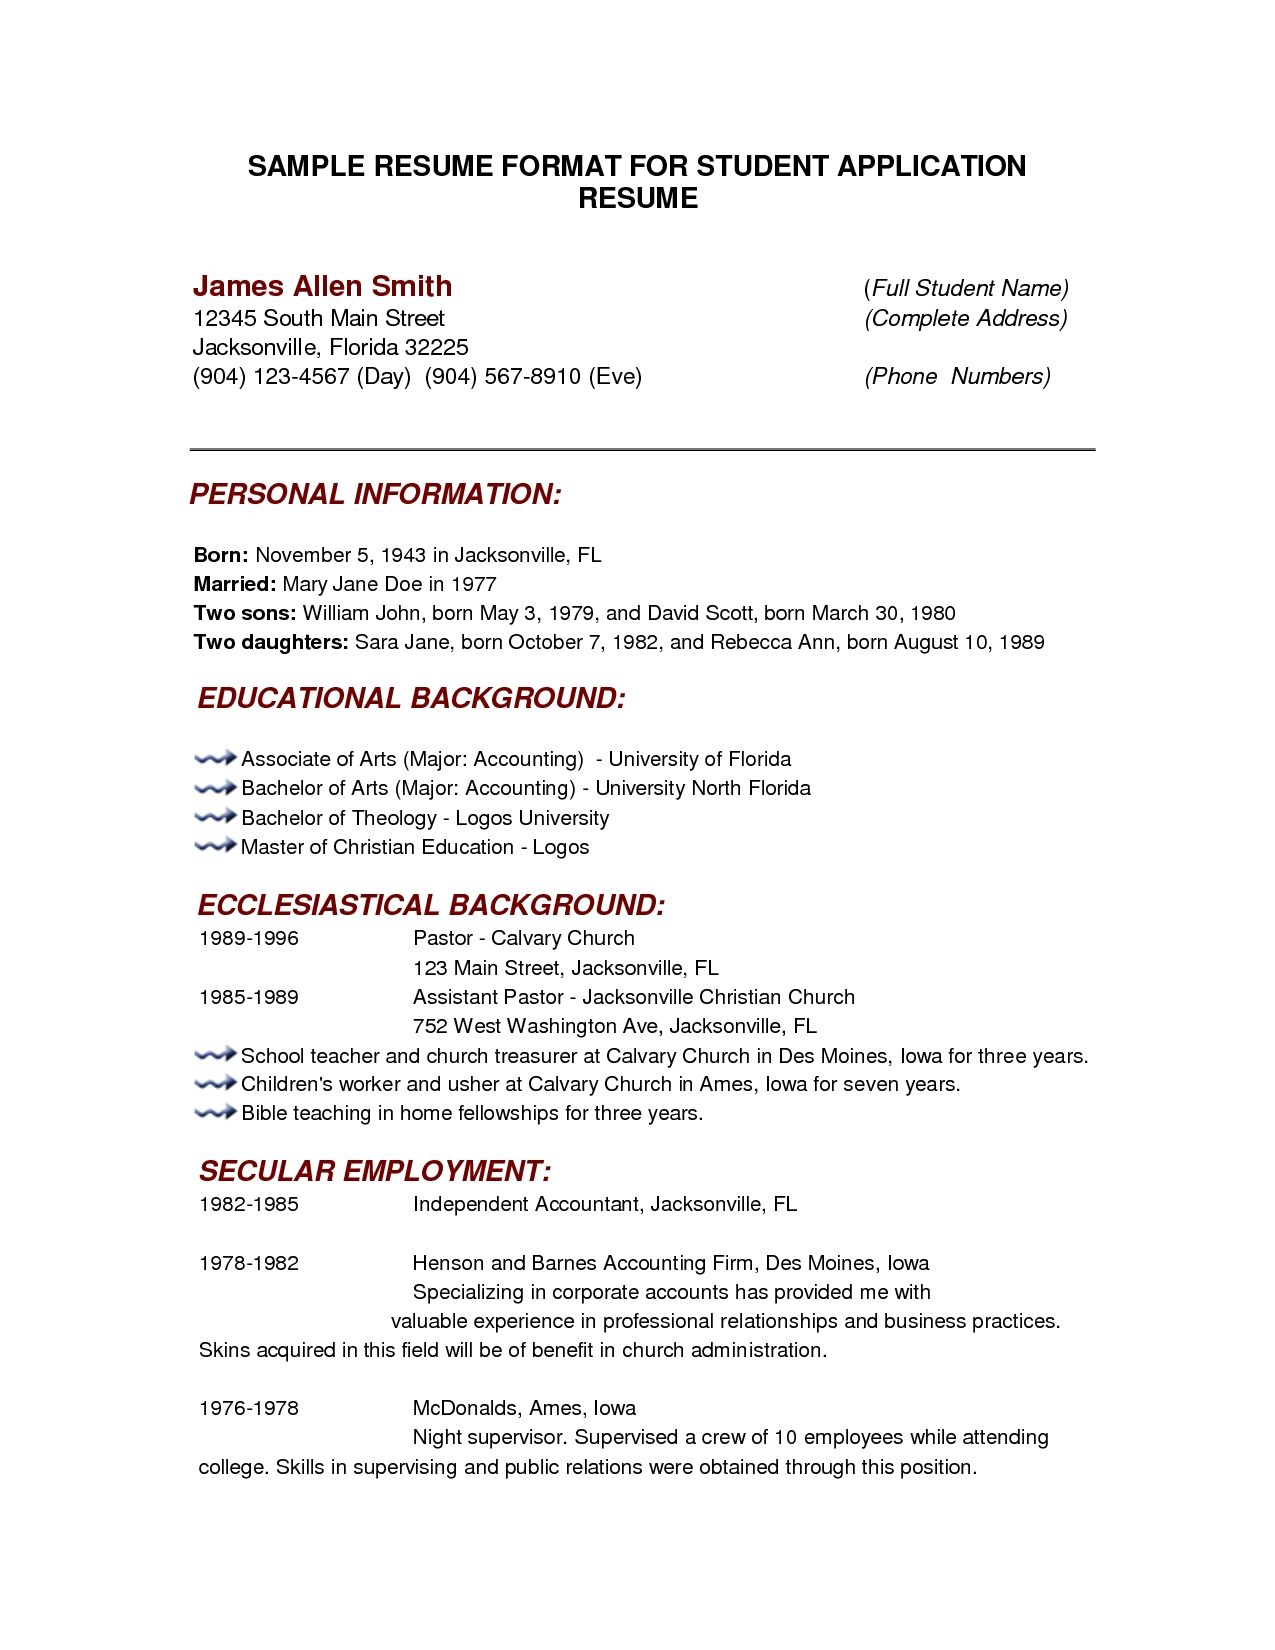 examples resumes best photos printable basic resume templates example samples word pdf - Format Of An Resume